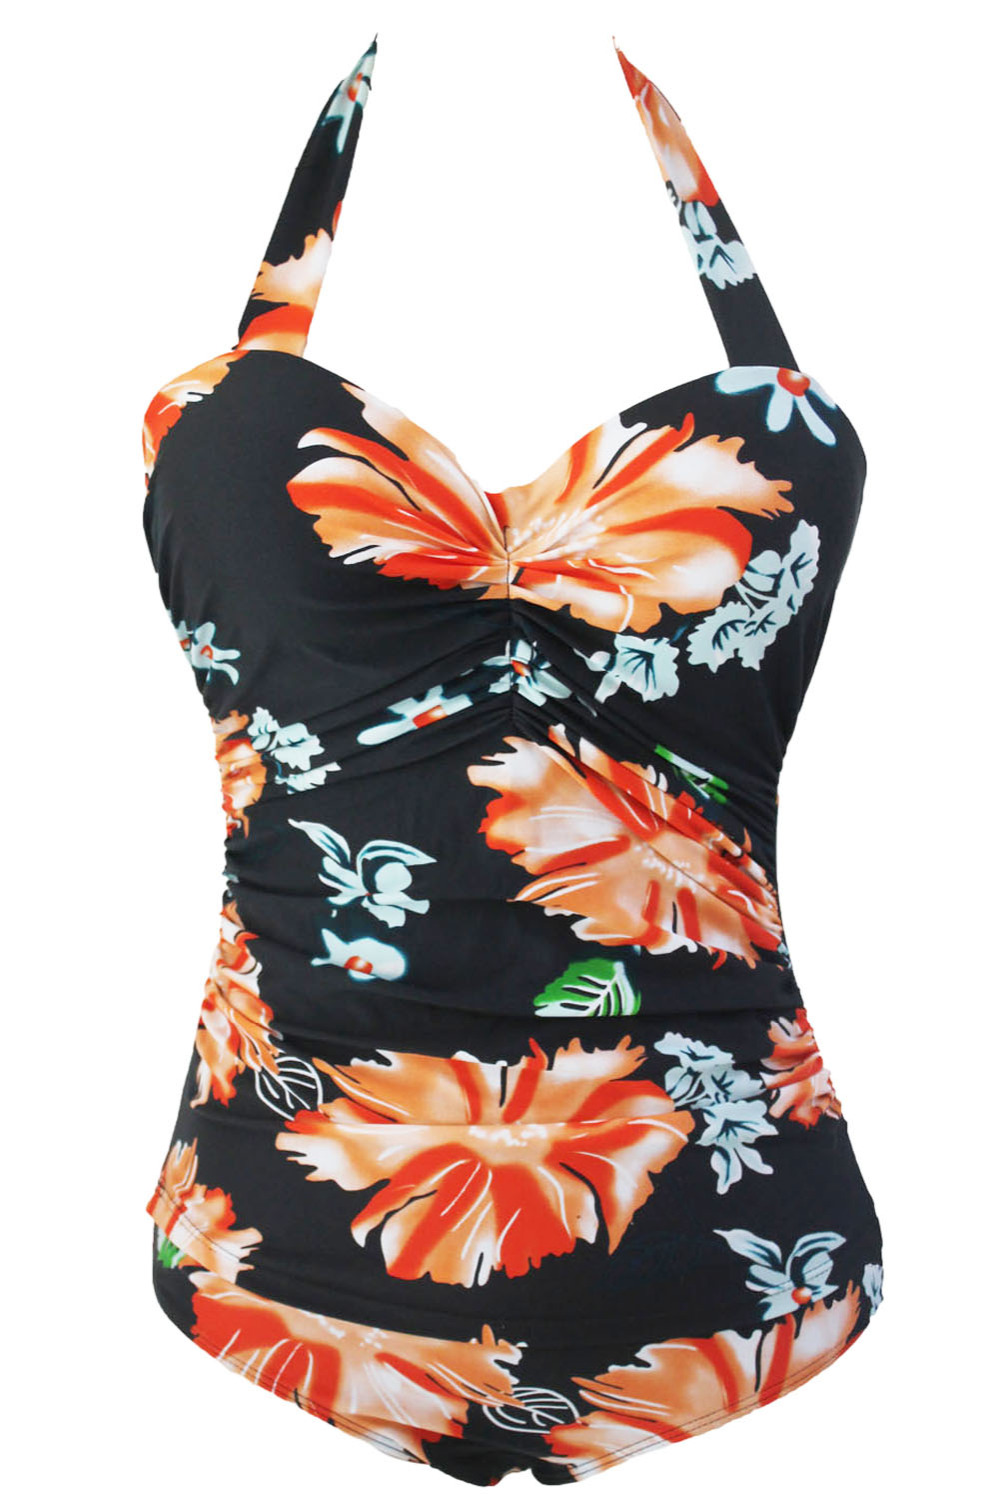 New One Piece Swimsuit Plus Size Swimwear Bodysuit Summer Style Sale Online Maillot bain Floral Print High Waist Swimsuit 41864 2017 new sexy one piece swimsuit strappy biquini high waist one piece swimwear women bodysuit plus size bathing suits monokinis